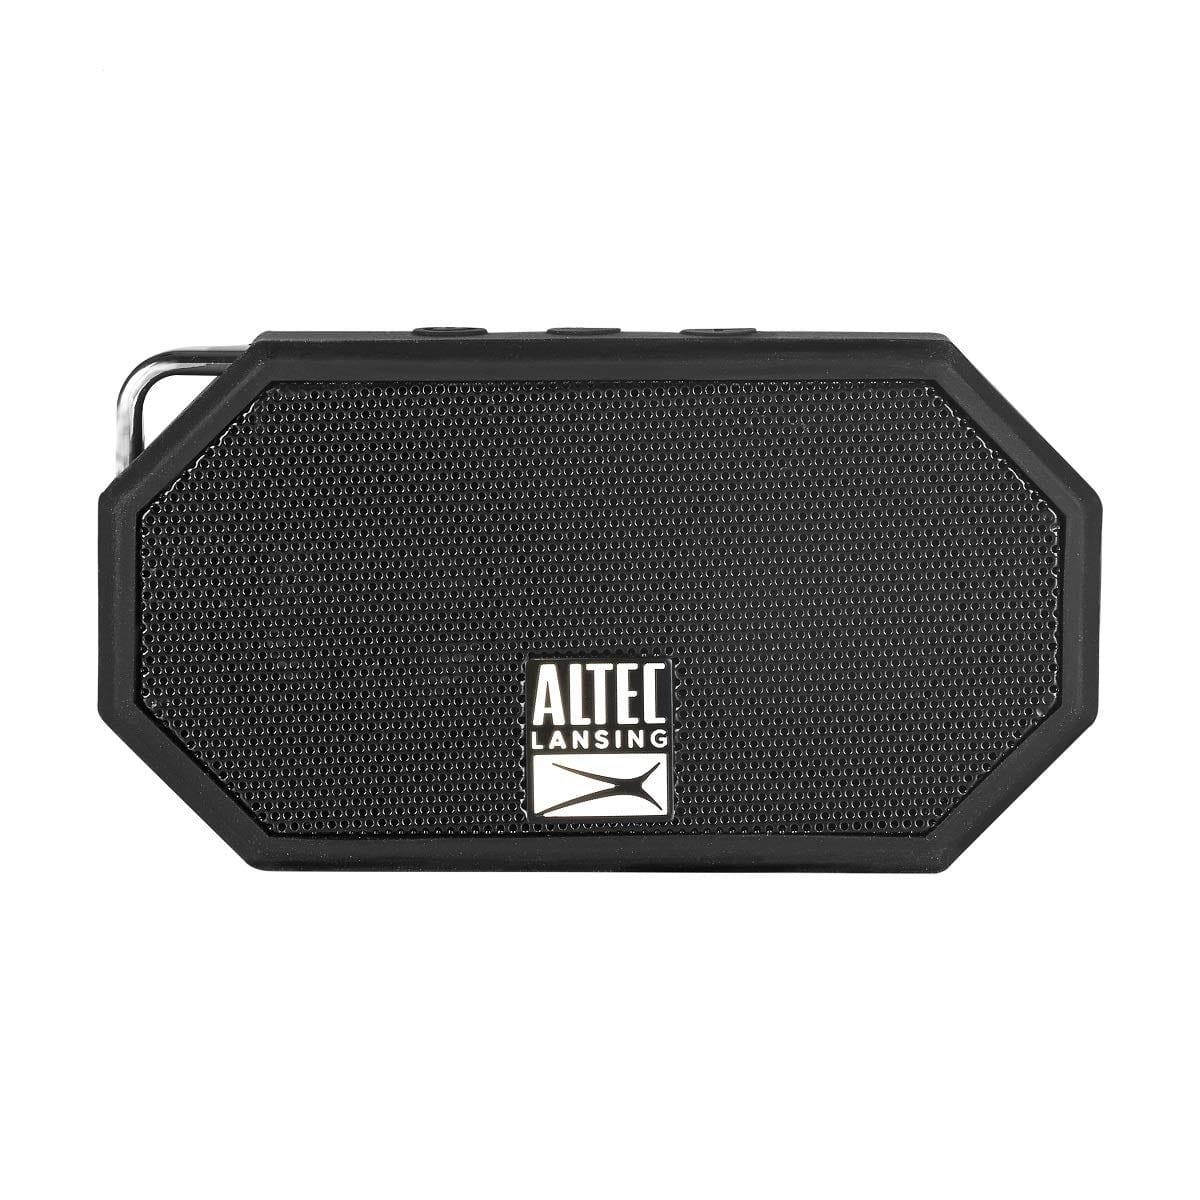 Altec Lansing IMW257-BLK Mini H2O Wireless Bluetooth Waterproof Speaker for $11.99